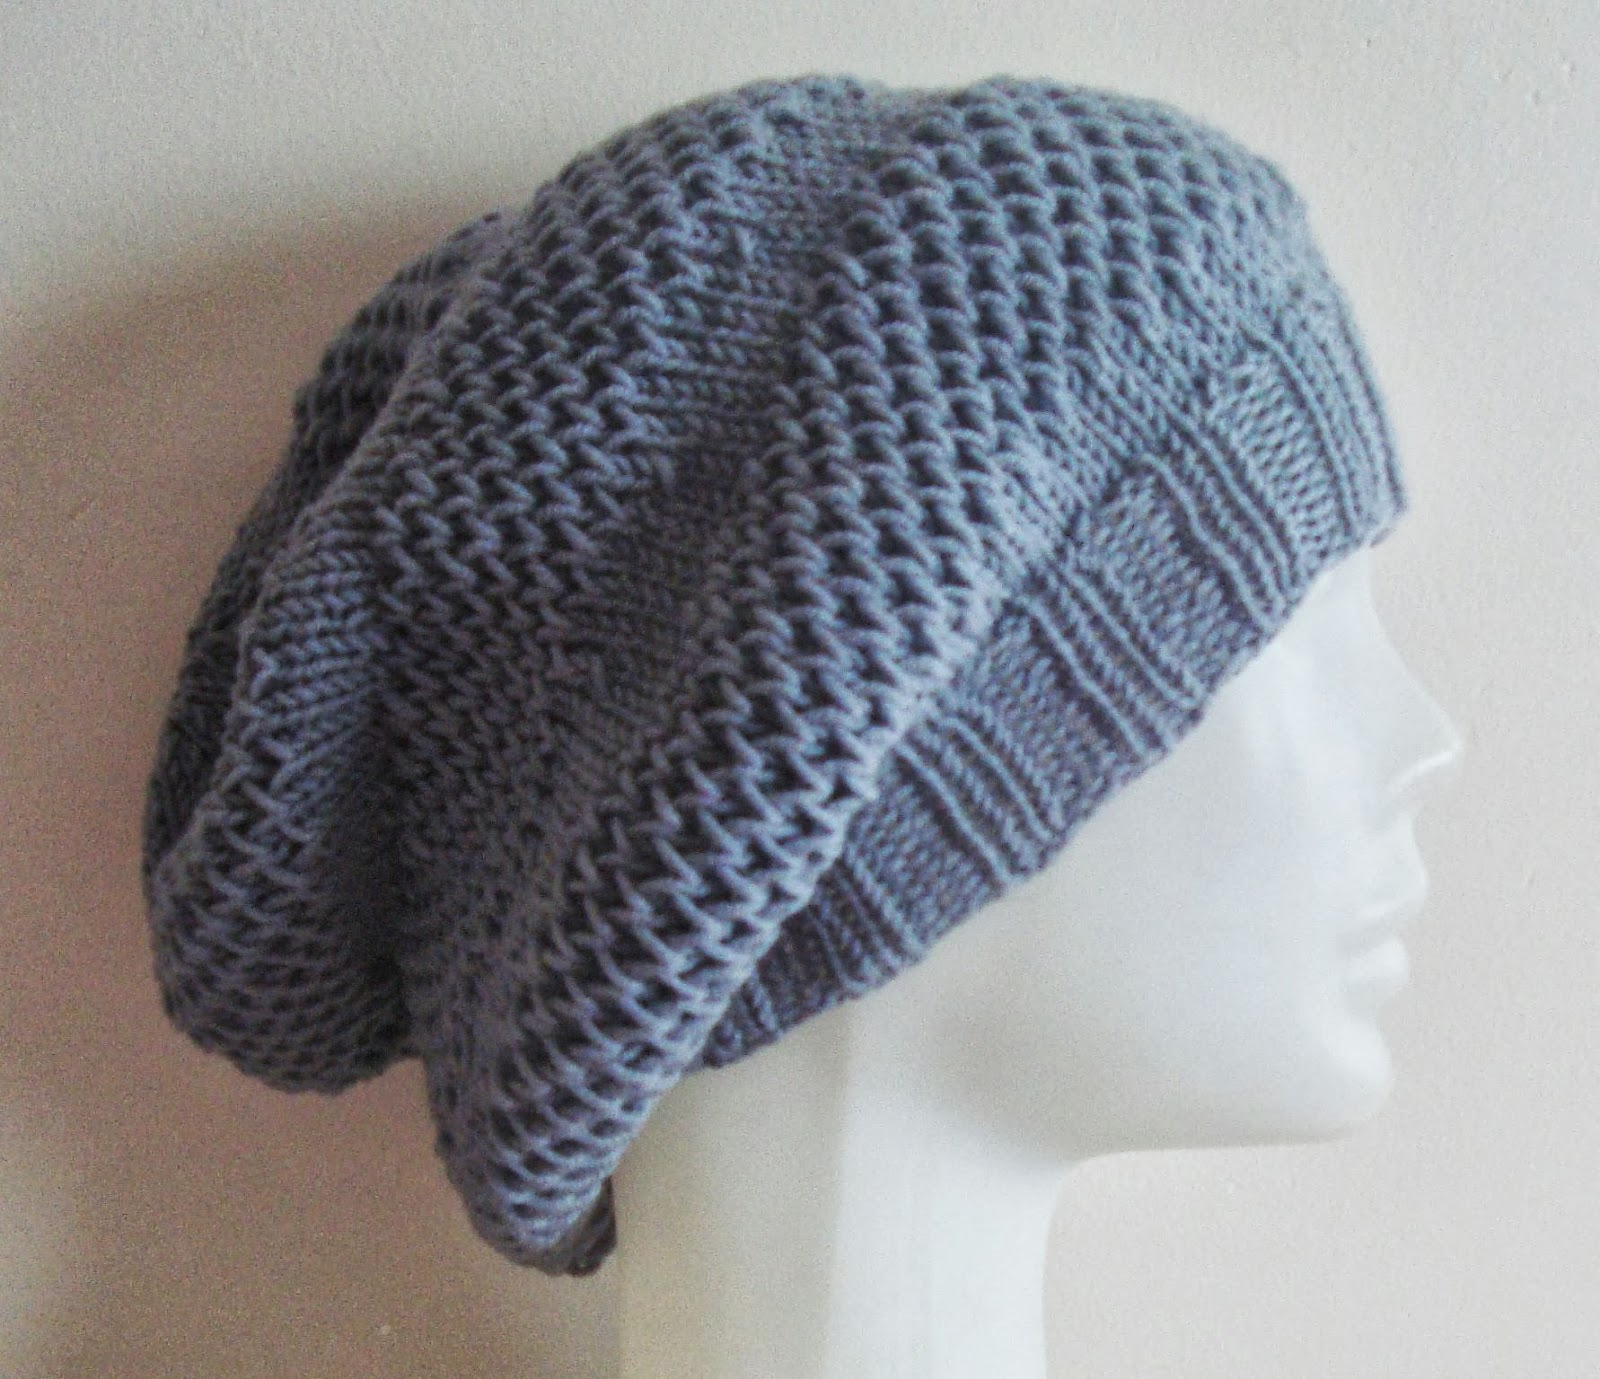 Hand Knitted Hat Patterns : Hand Knit Hats